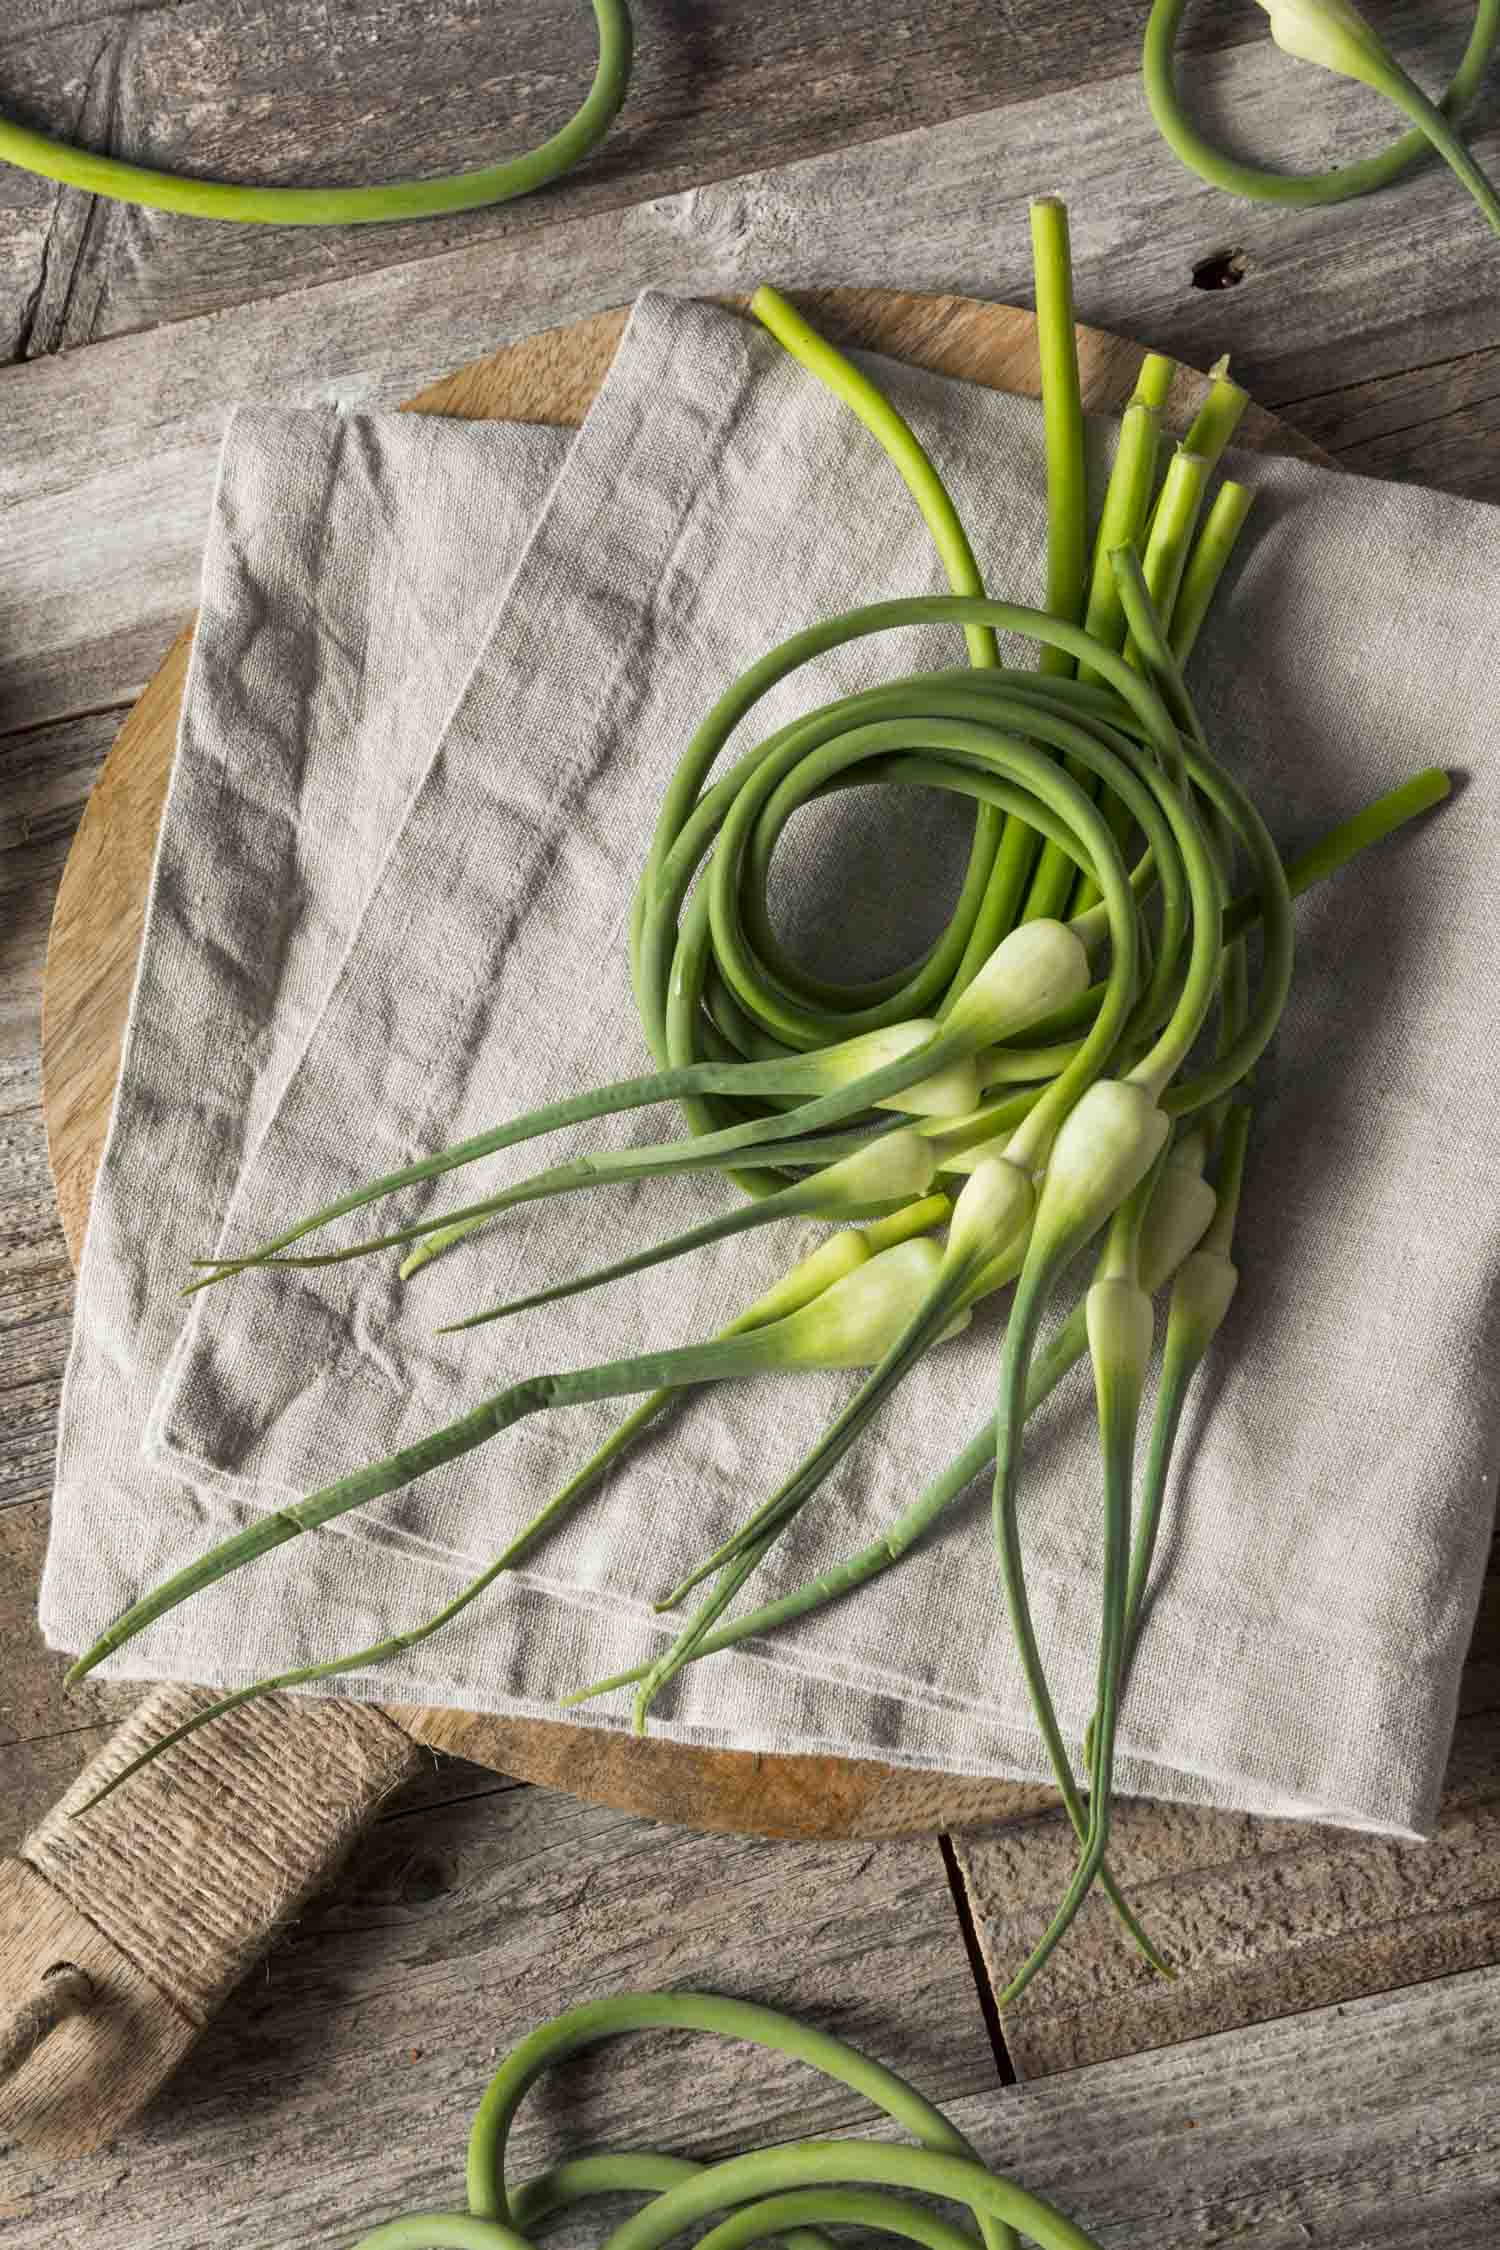 Garlic scapes on a linen napkin on a table.